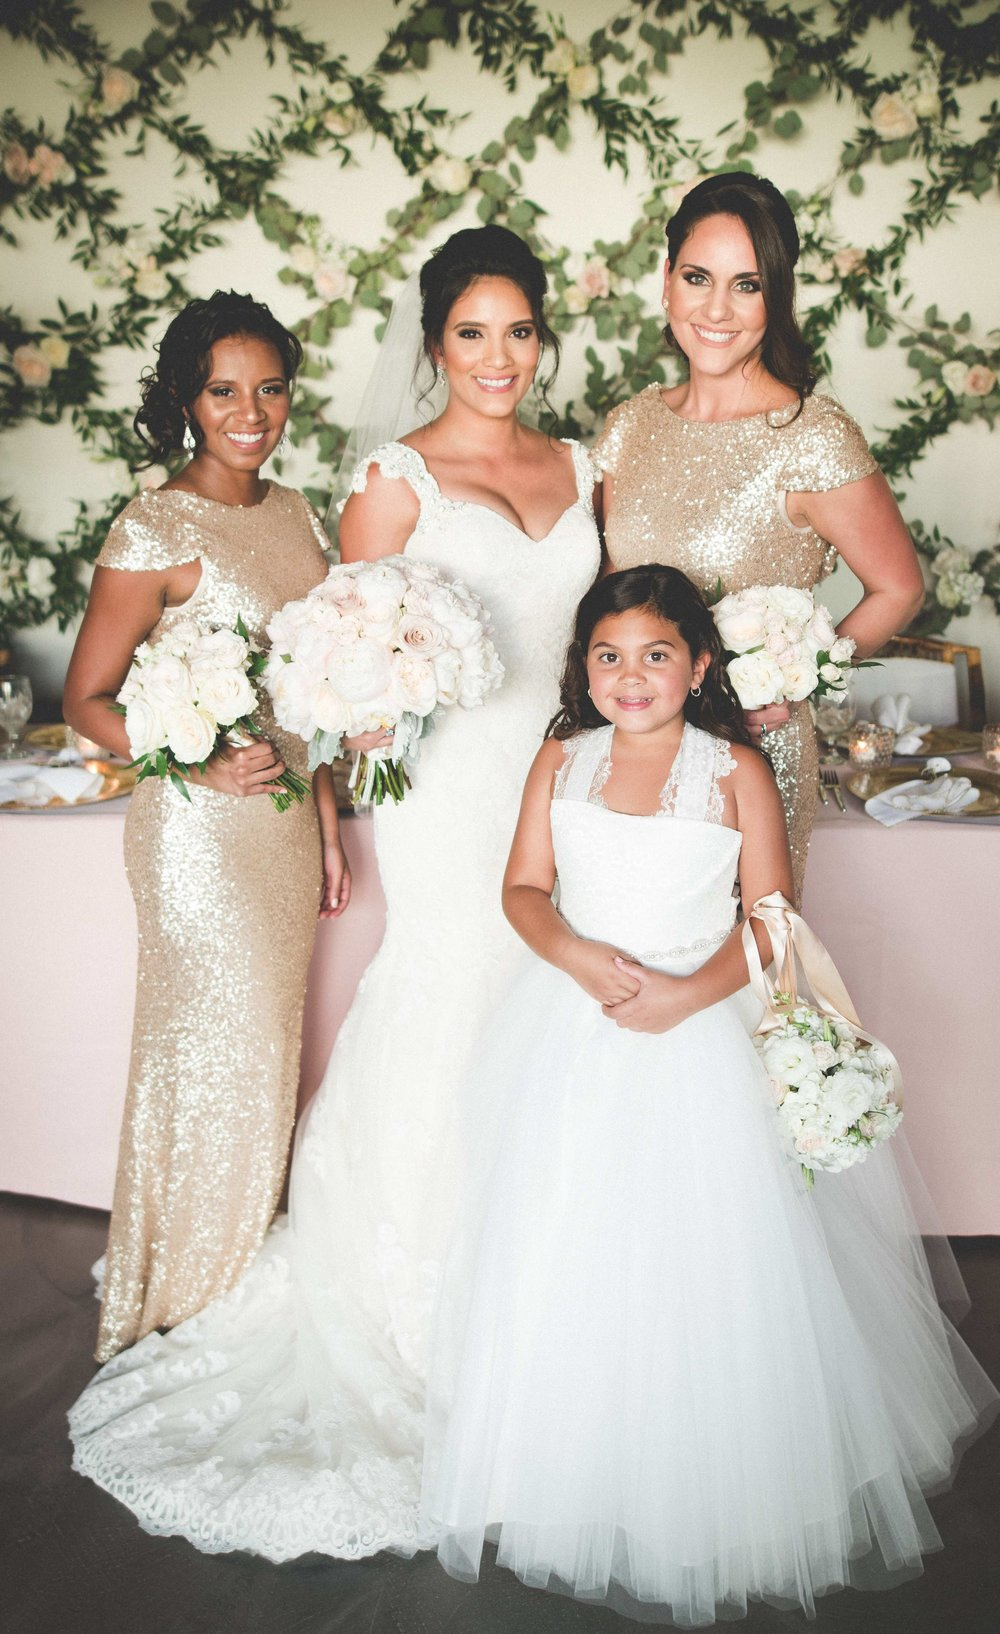 Bridesmaids glittered in rose-gold sequined gowns and the flower girl looked precious in white lace and tulle.